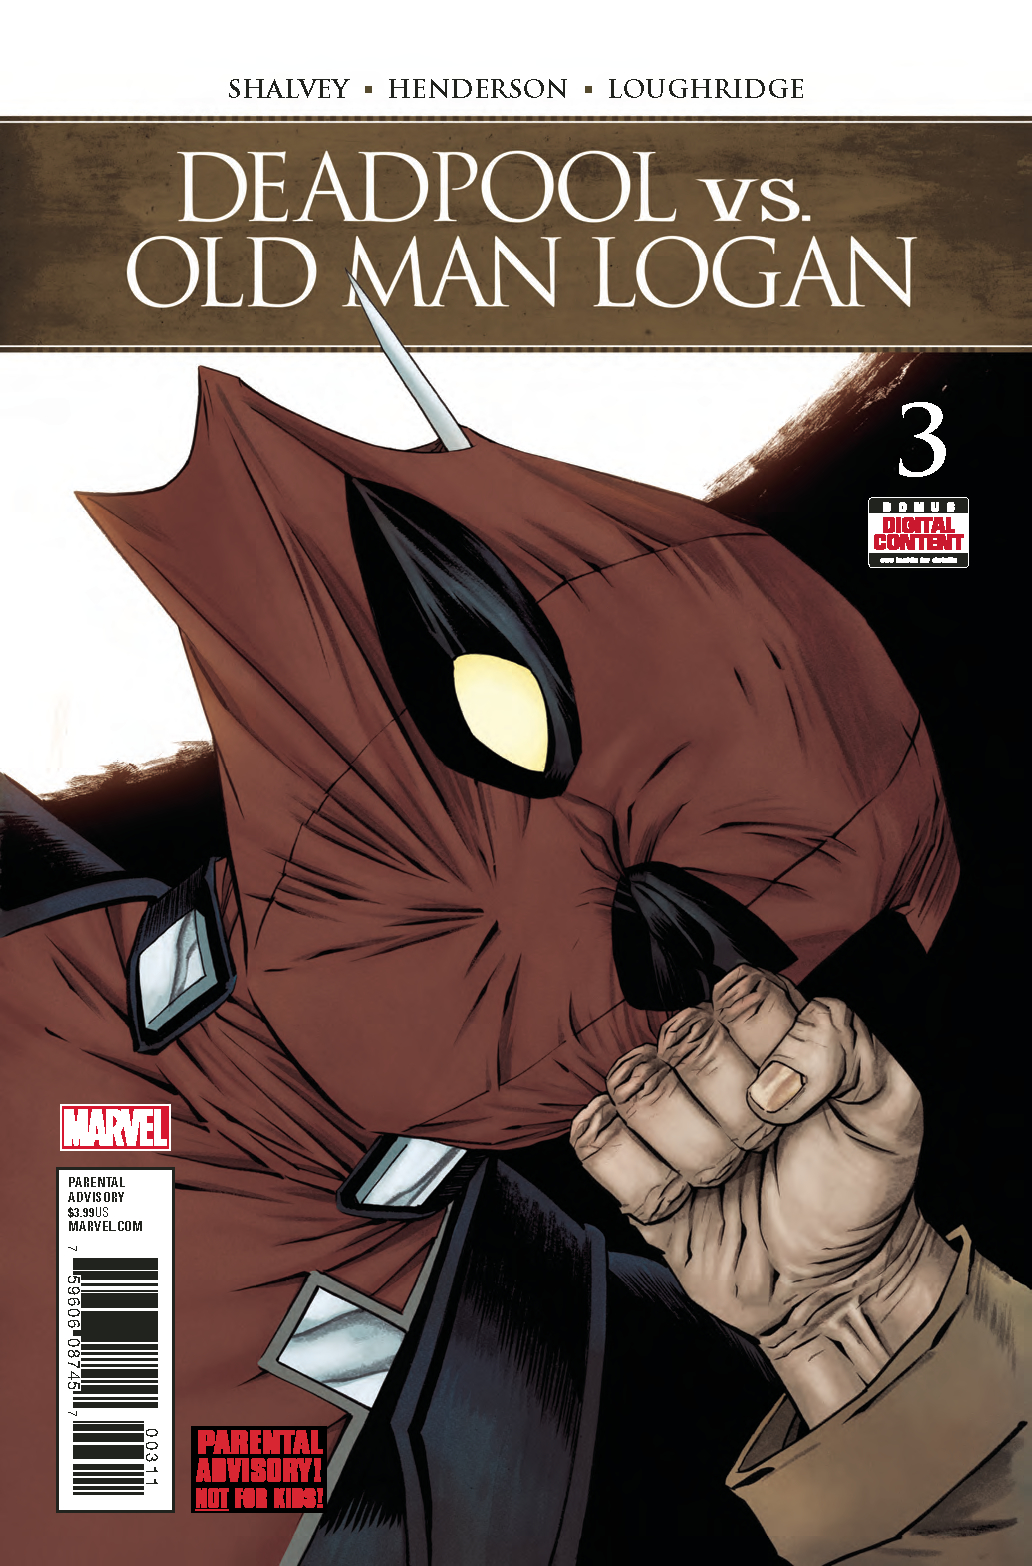 DEADPOOL VS OLD MAN LOGAN #3 (OF 5)